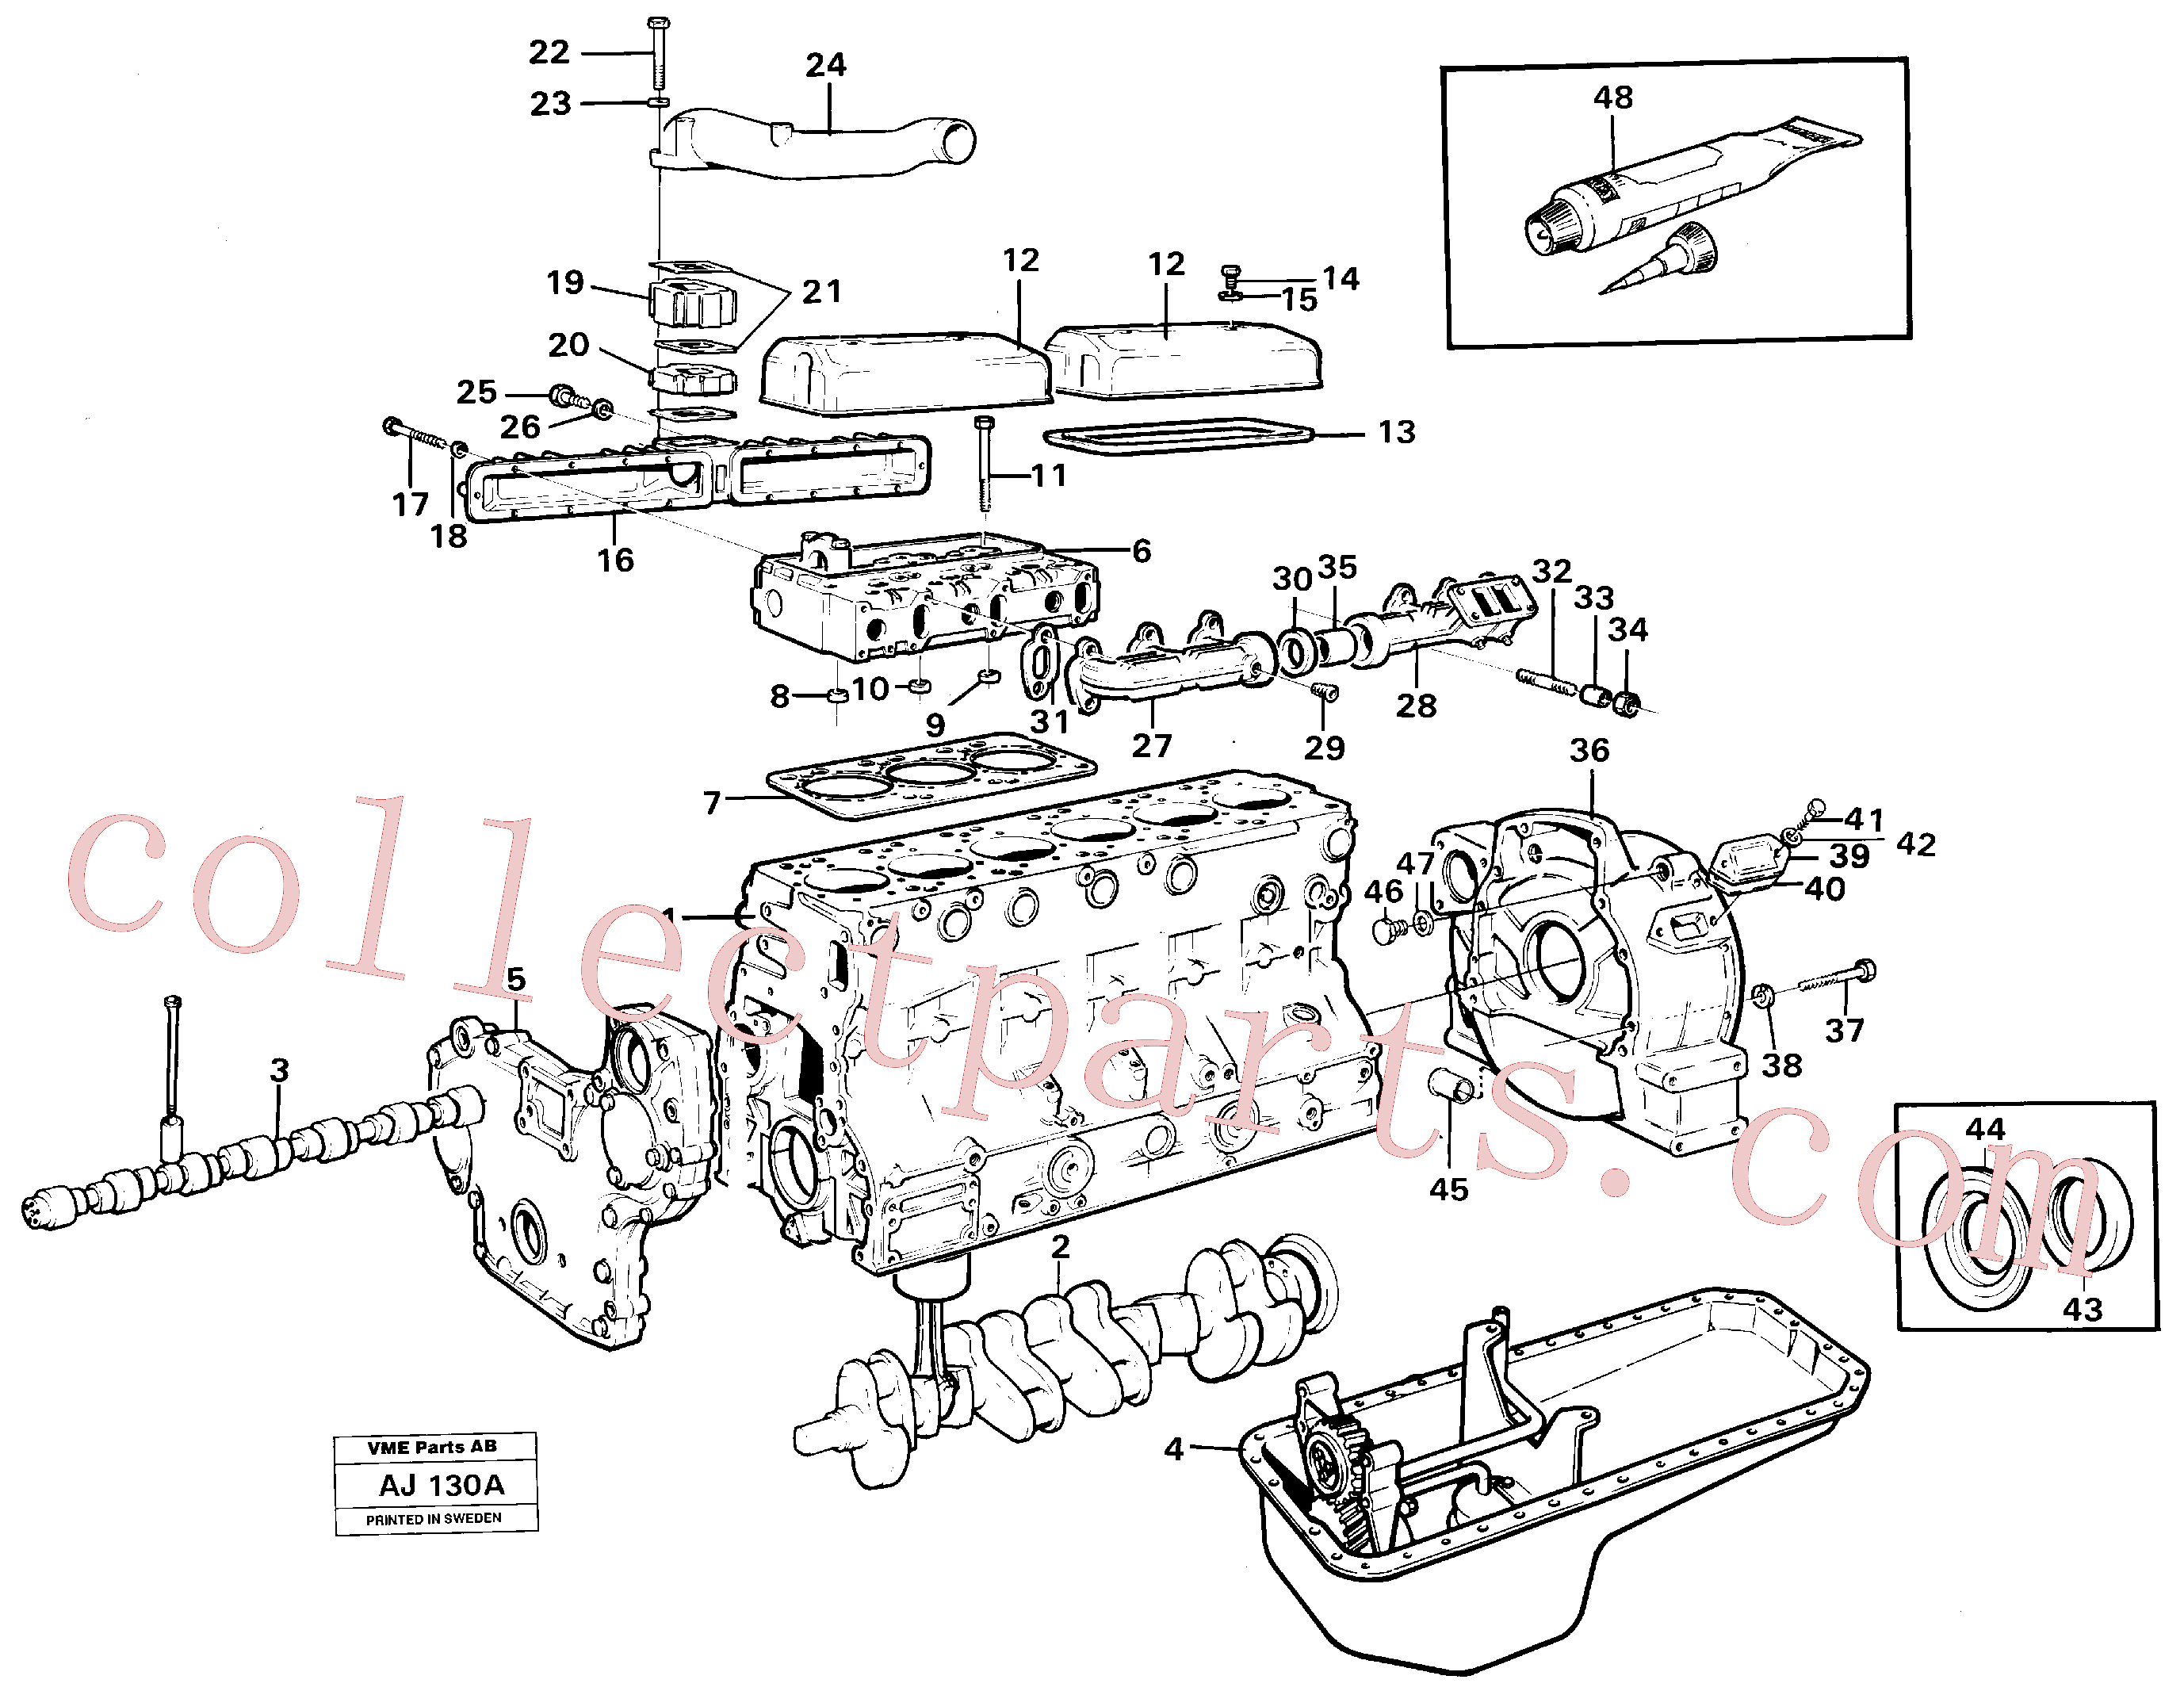 VOE13971002 for Volvo Engine with fitting parts(AJ130A assembly)